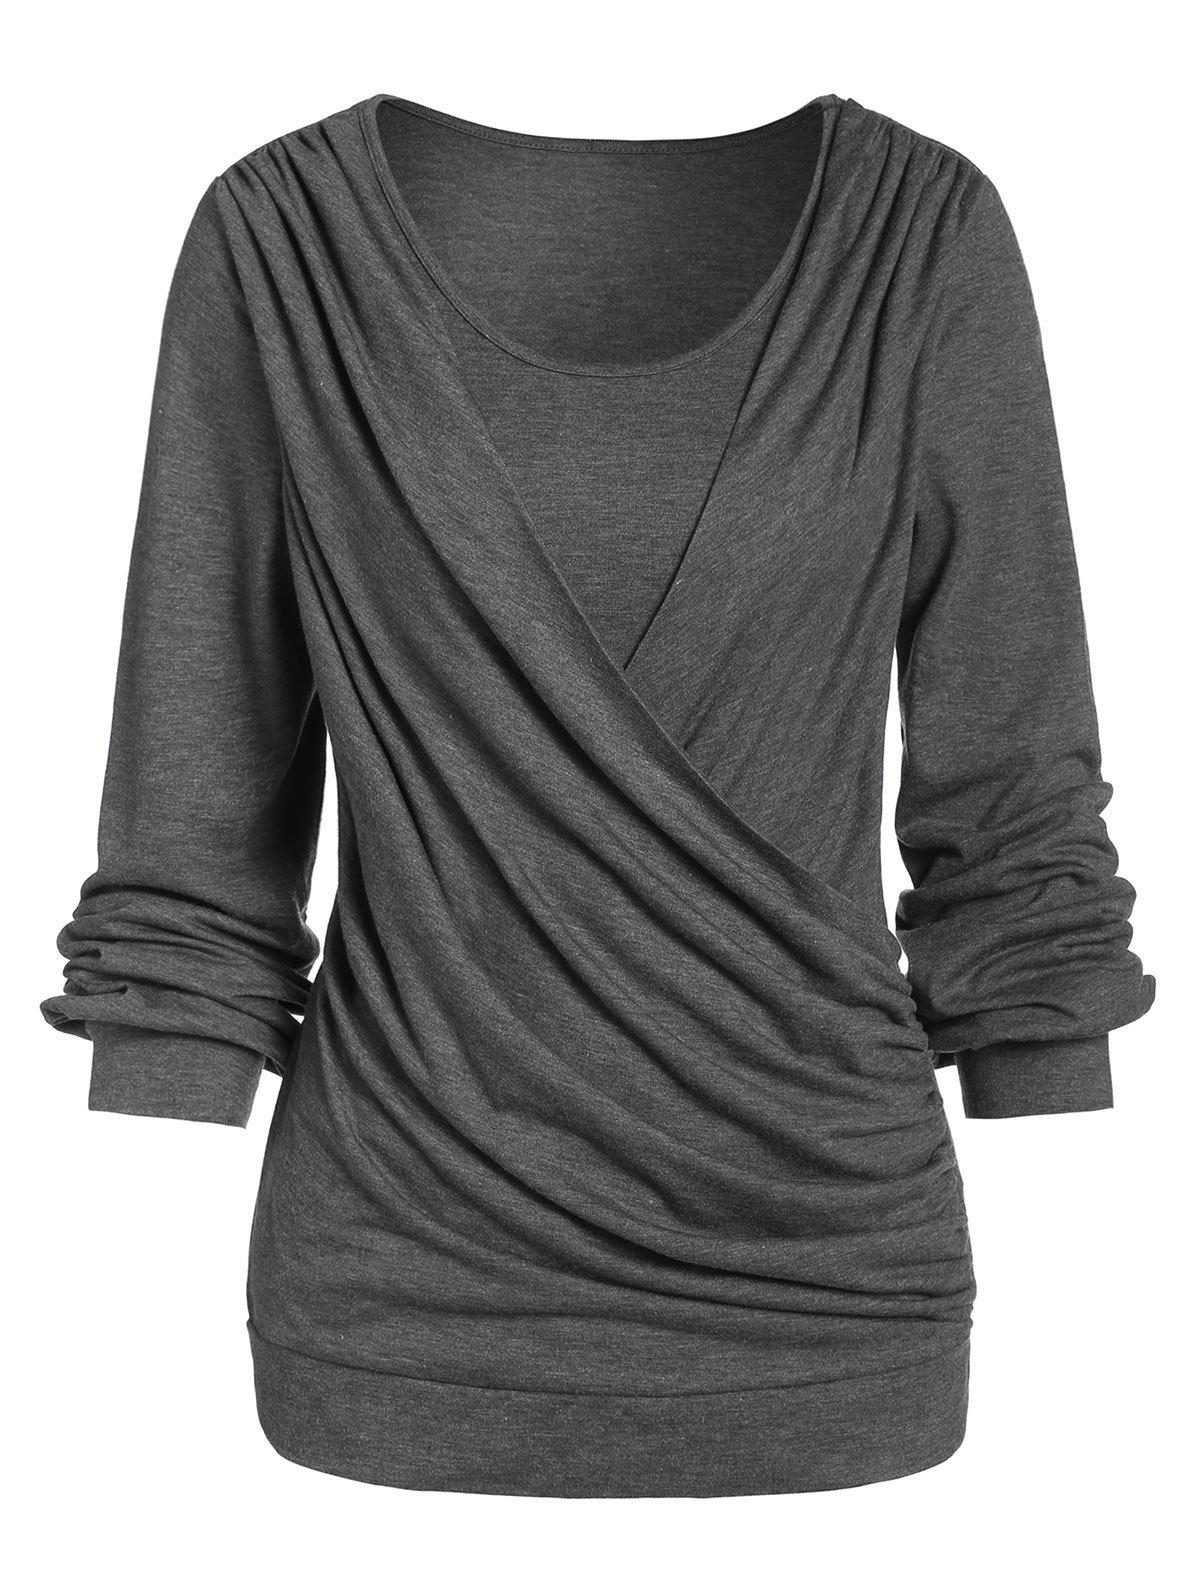 Long Sleeve Round Collar Marled T Shirt - CLOUDY GRAY 2XL